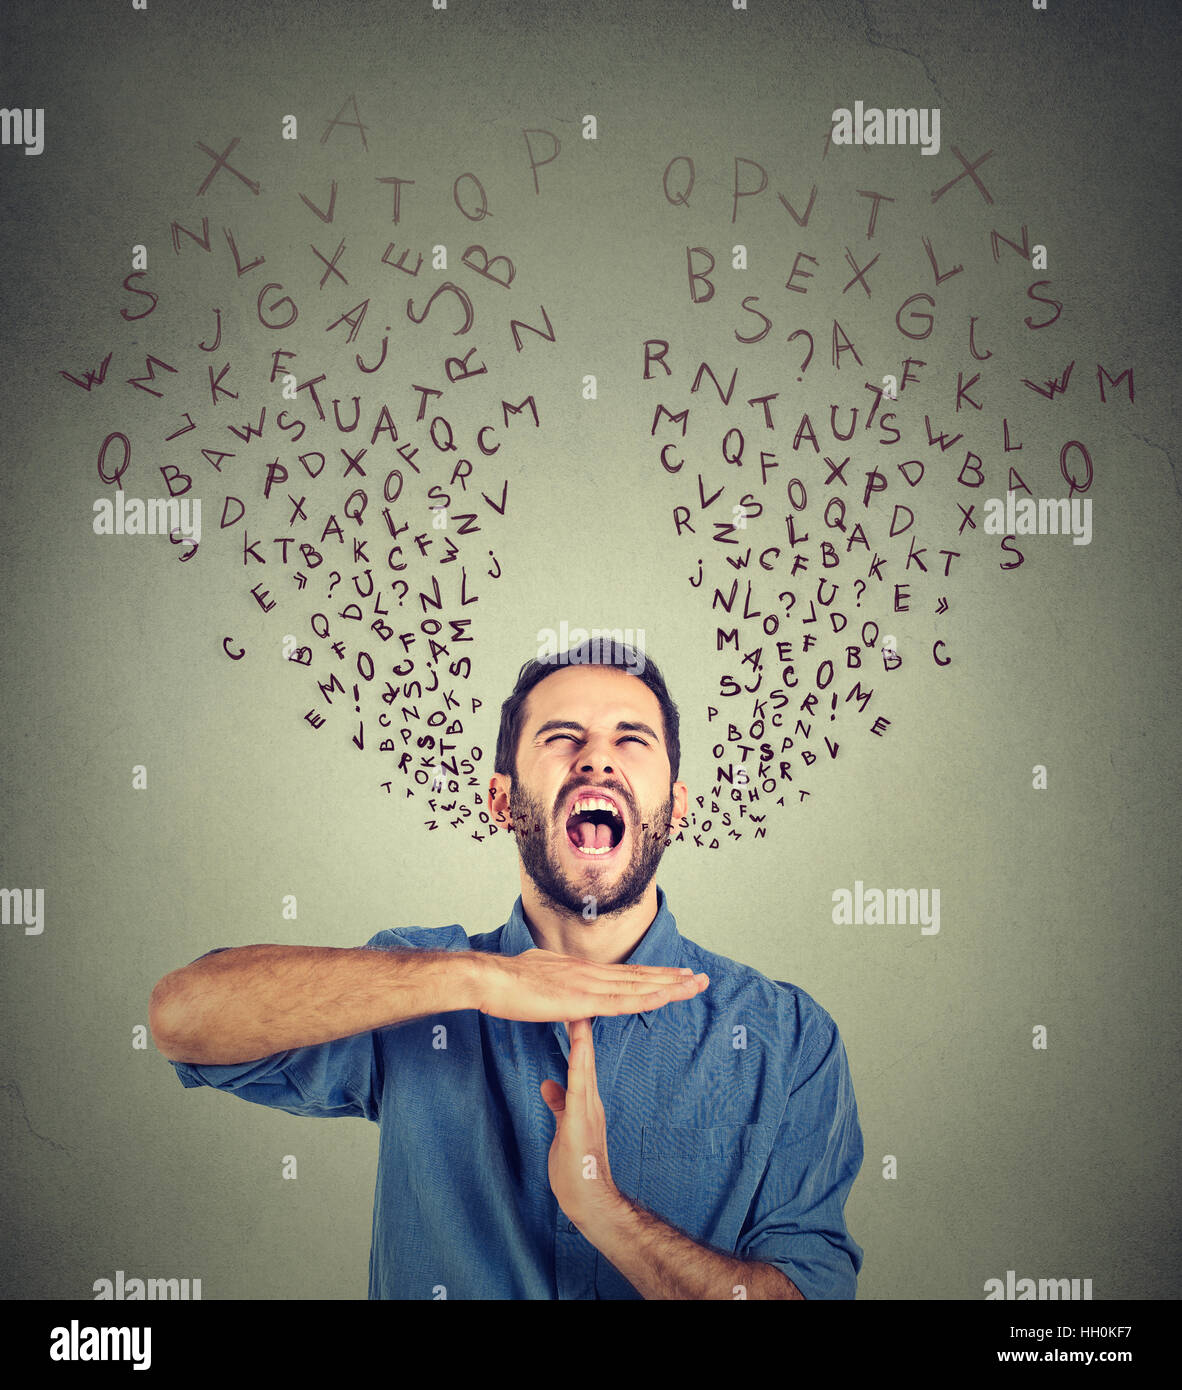 man showing time out gesture frustrated screaming alphabet letters coming out of mouth isolated gray background. - Stock Image